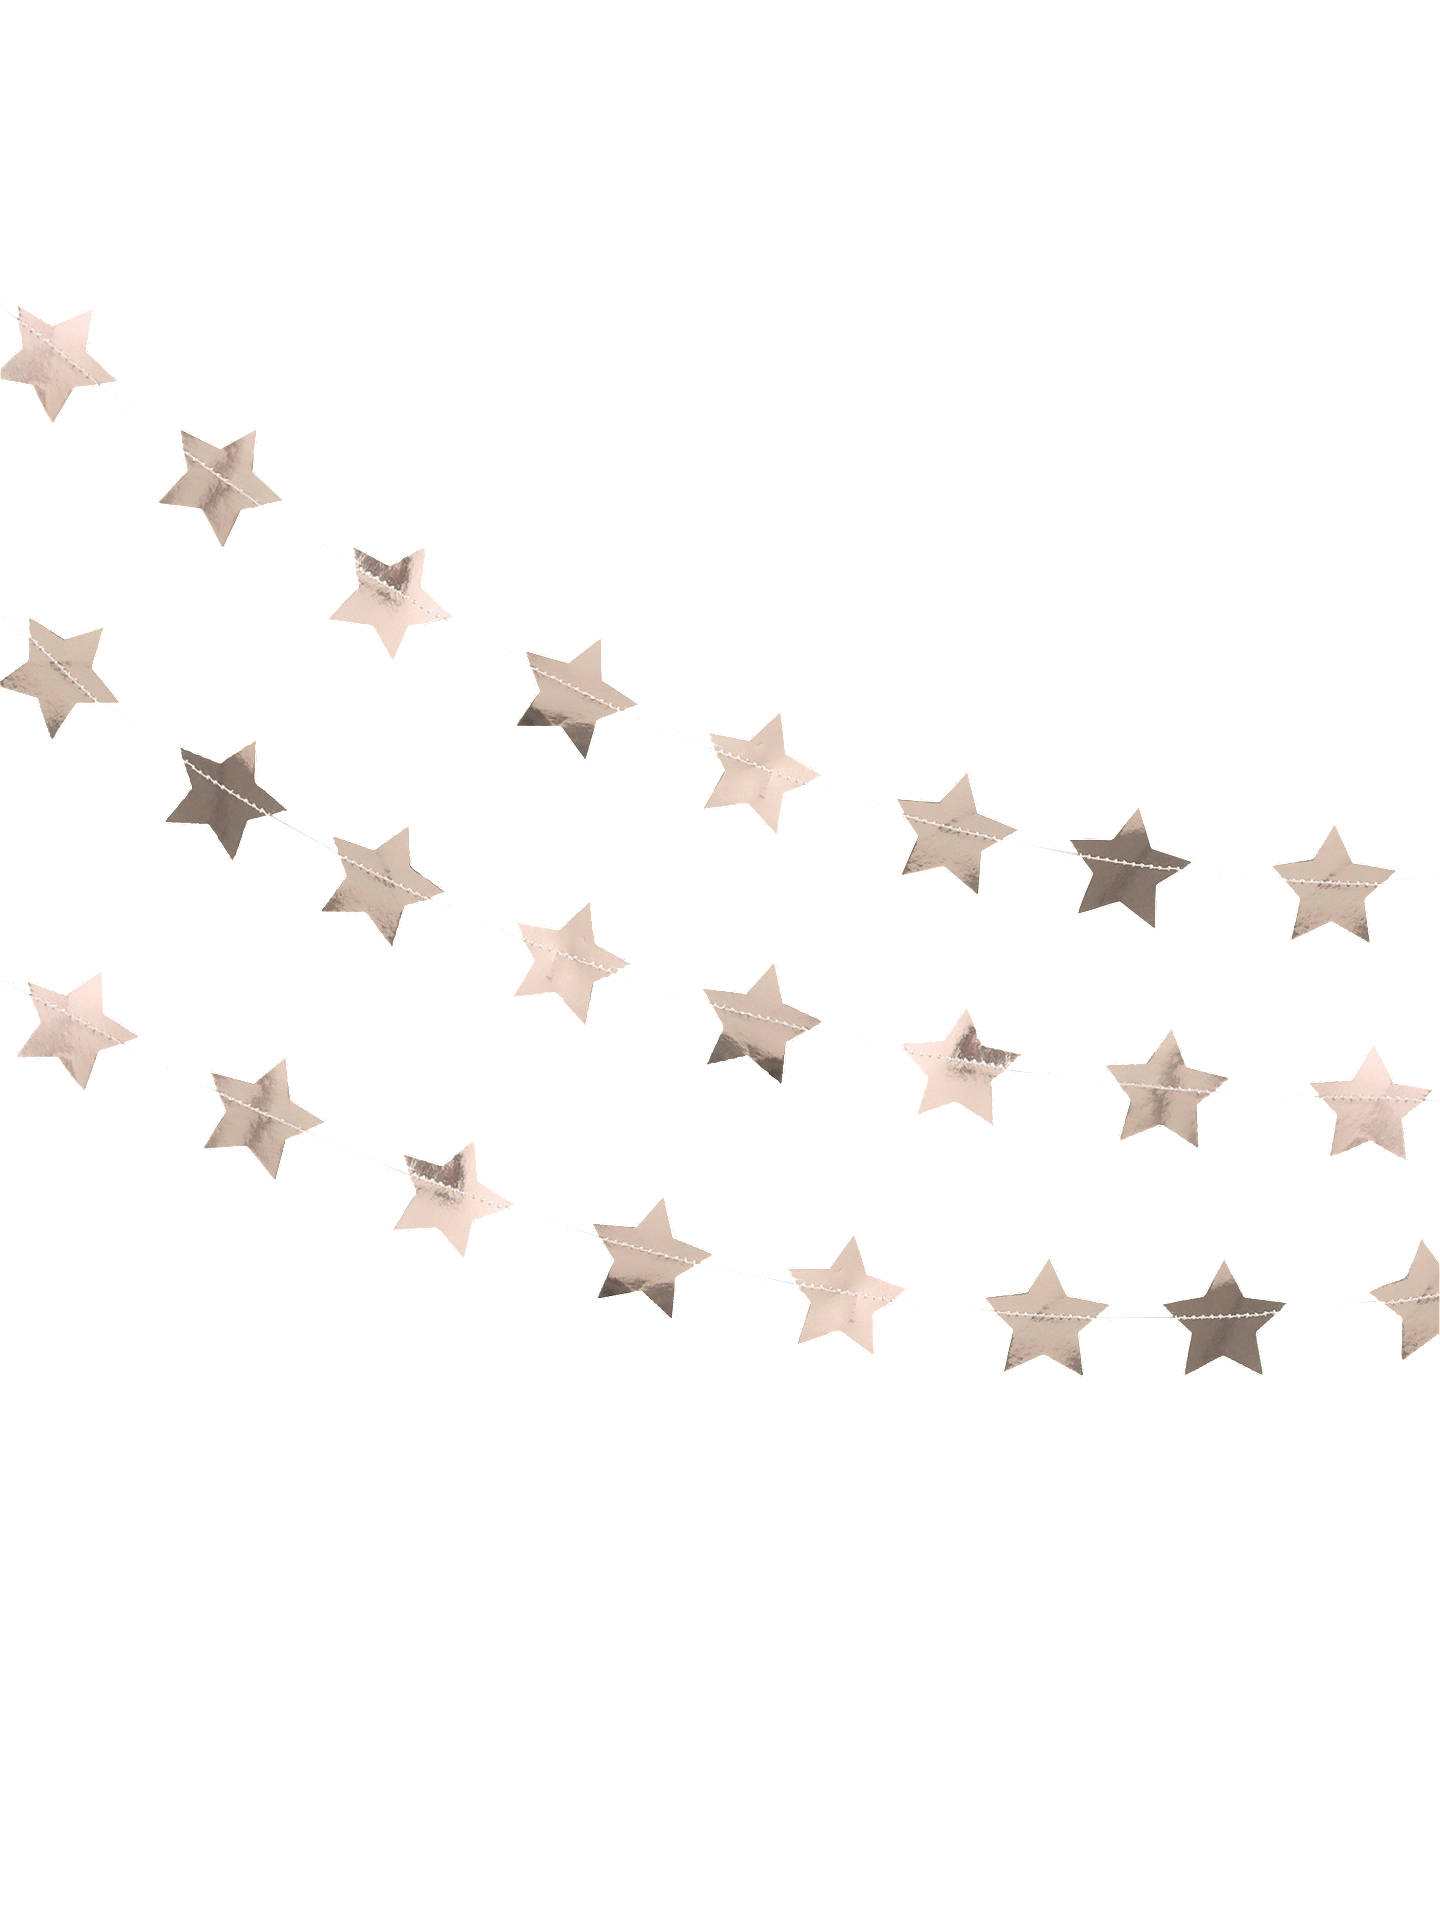 BuyGinger Ray Rose Gold Star Garland Online at johnlewis.com